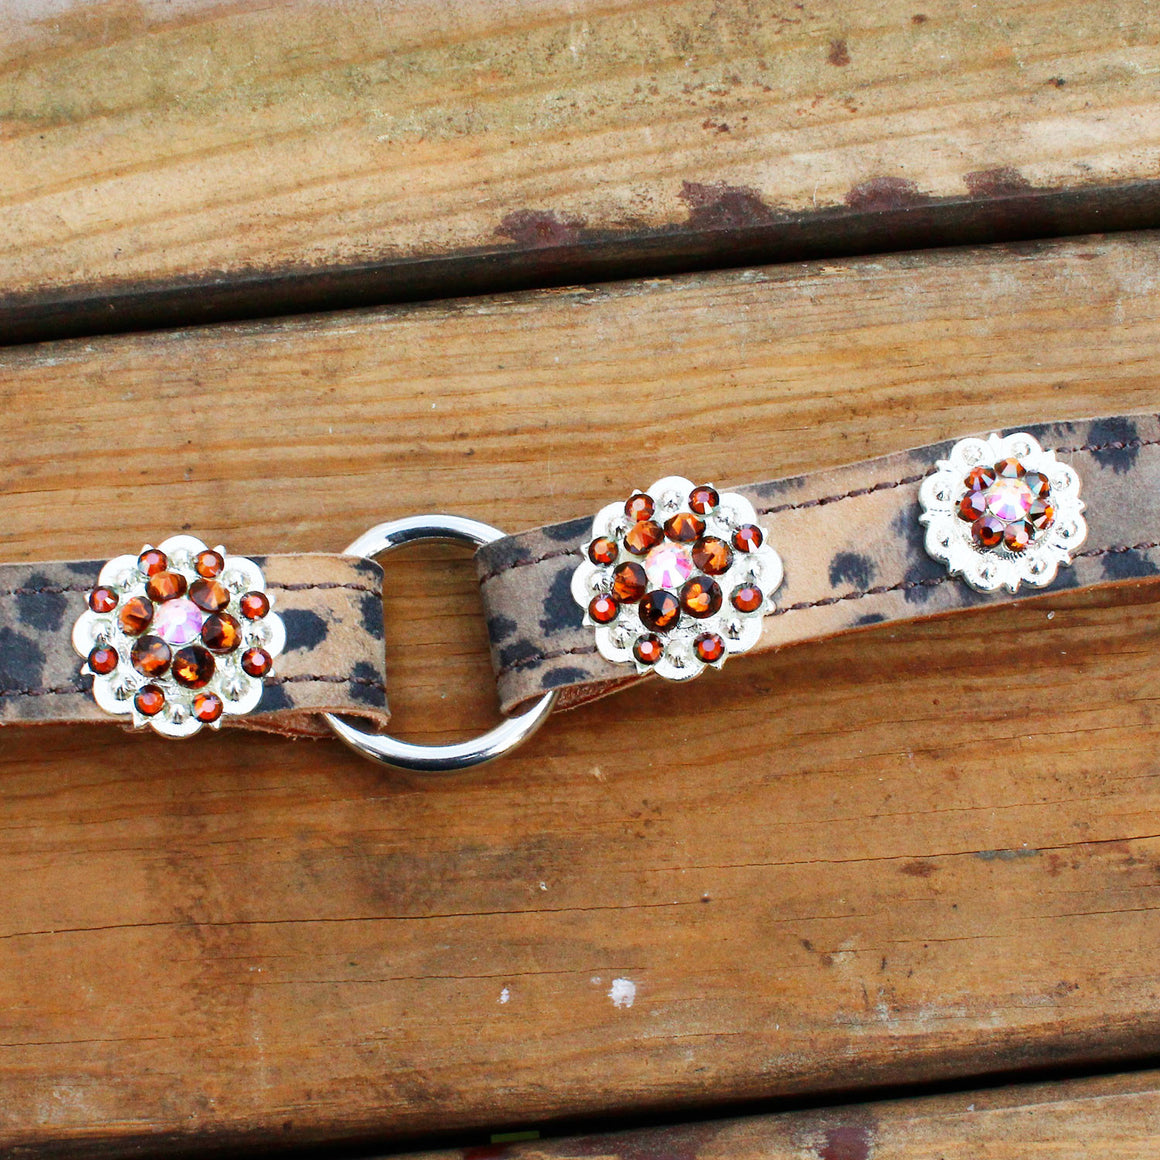 Cheetah Print 1 Inch Center Ring Dog Collar with AB and Smoke Topaz Conchos